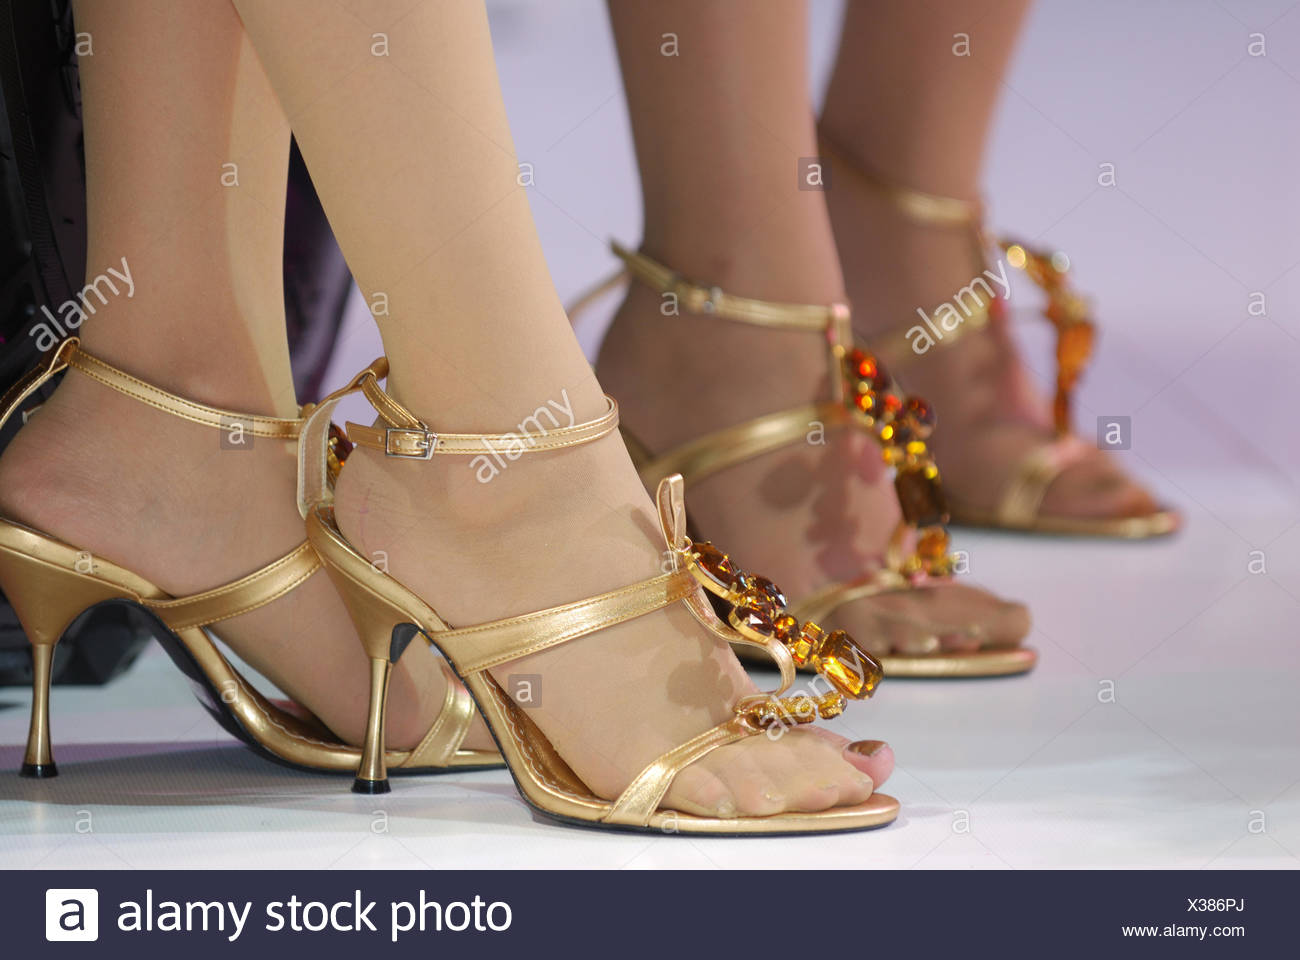 Low Section Of Women Wearing High Heels - Stock Image